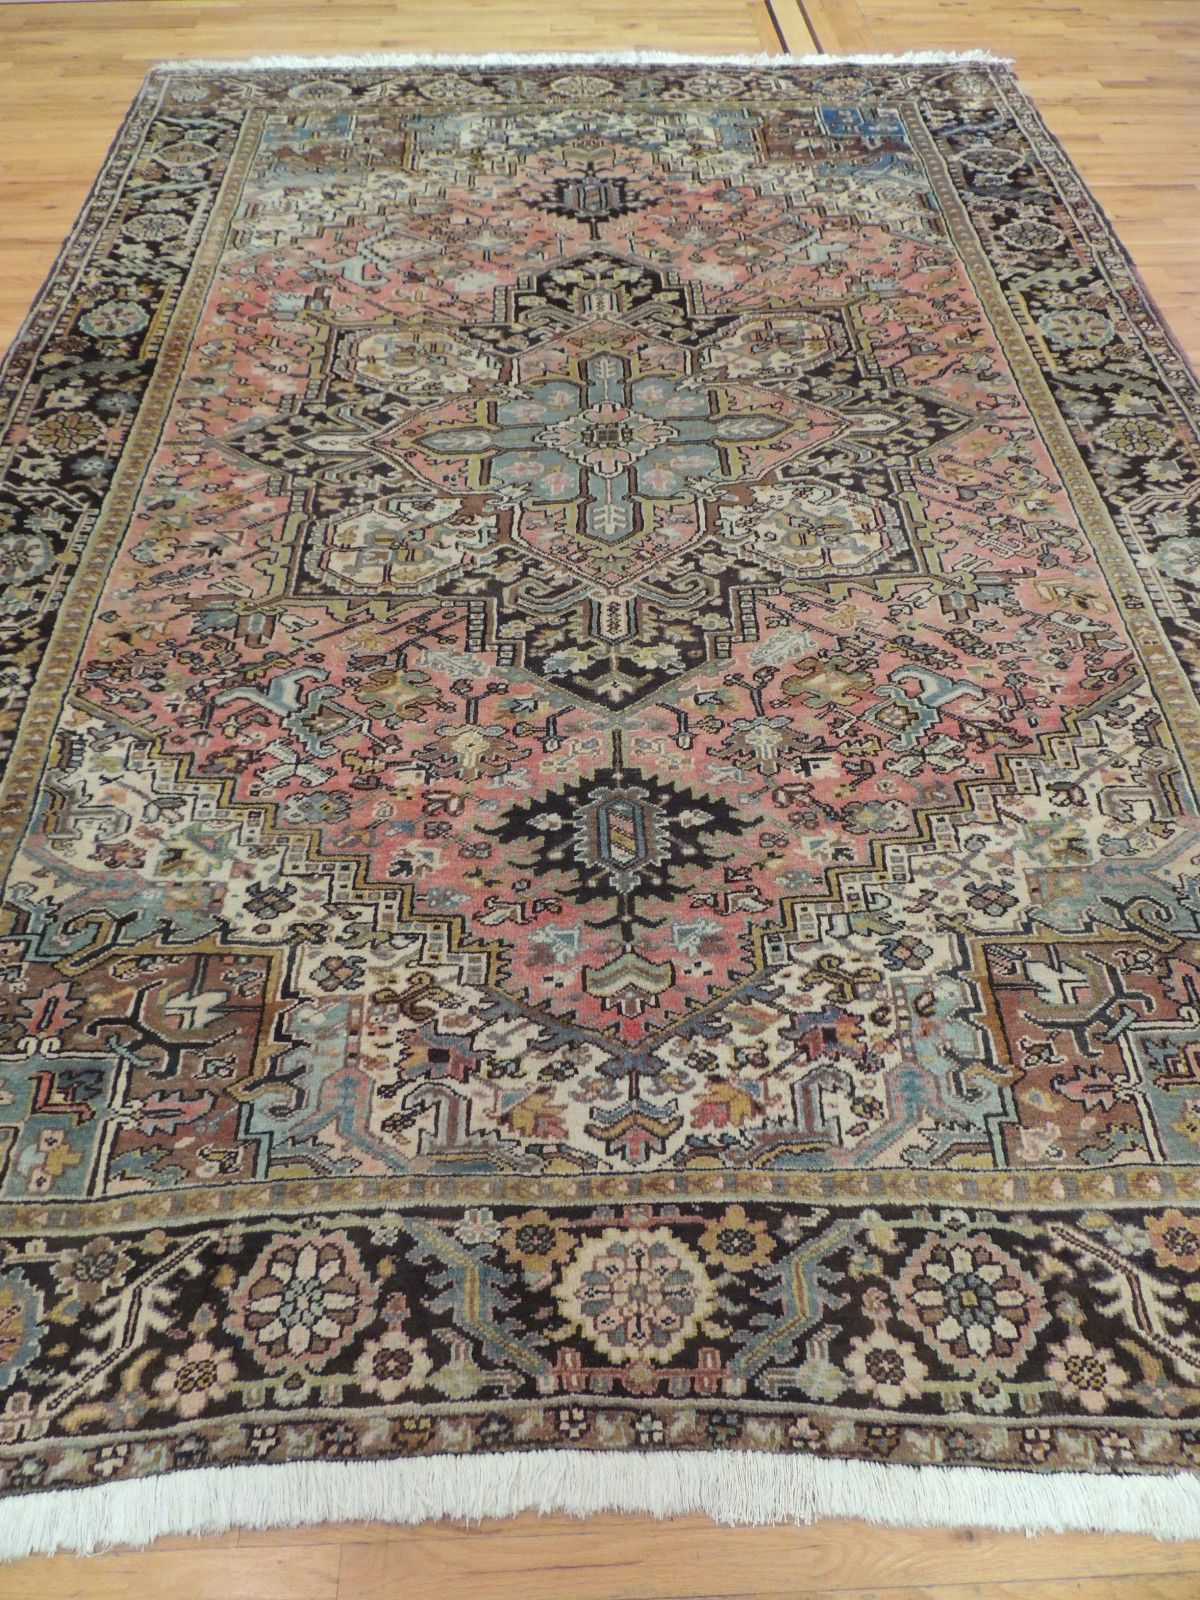 Unusual Size Antique Persian Heriz 8x12 9x12 Oriental Area Rug Striking Persian Heriz With A Gorgeous Blue X2f G Oriental Area Rugs Area Rugs Wool Area Rugs